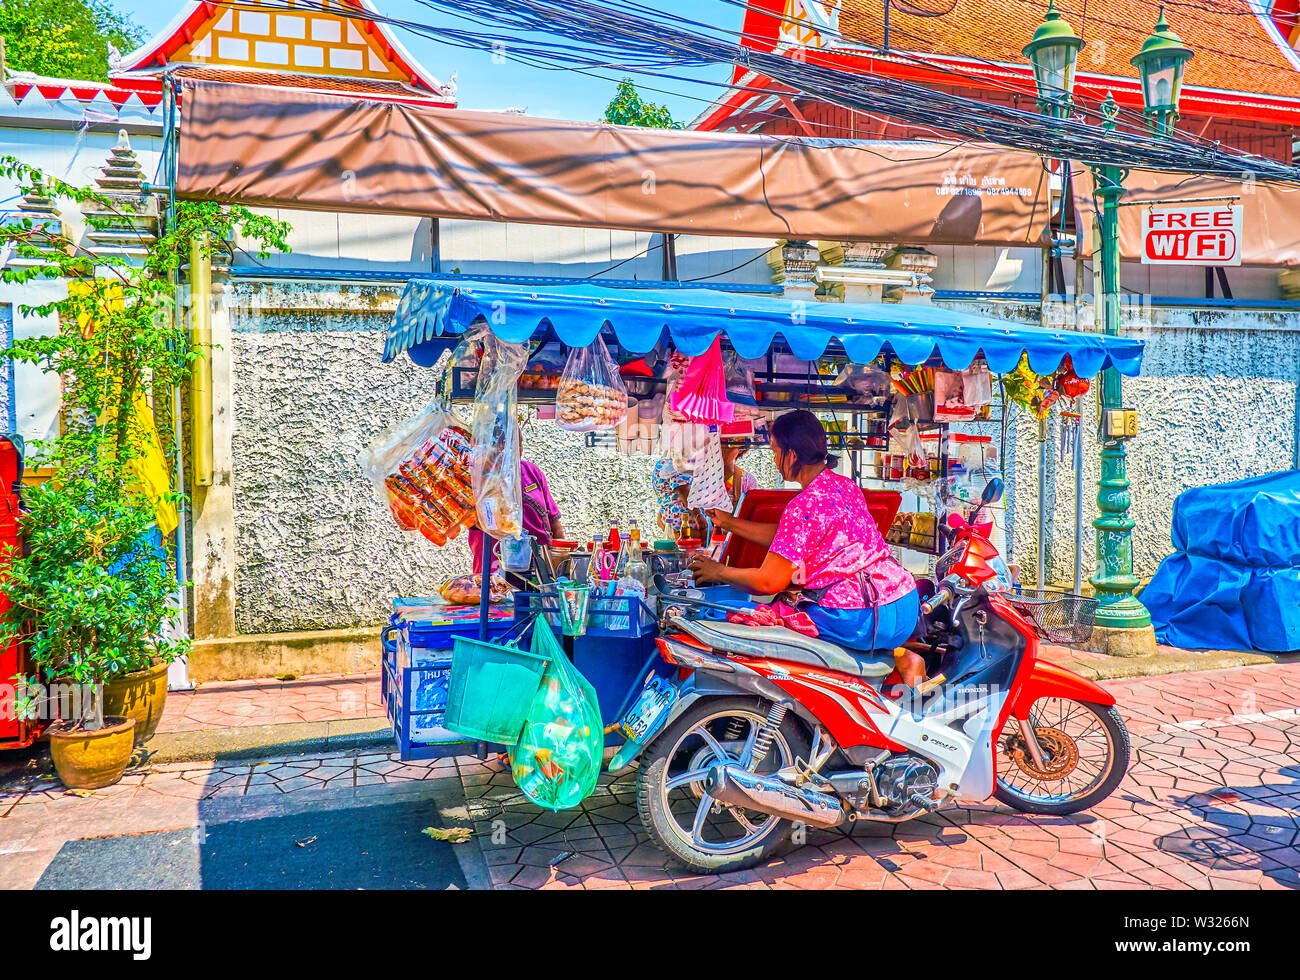 BANGKOK, THAILAND - APRIL 22, 2019: The street vendor of beverages makes coffee for the client, sitting at the motorcycle cart in Banglampu district, - Stock Image